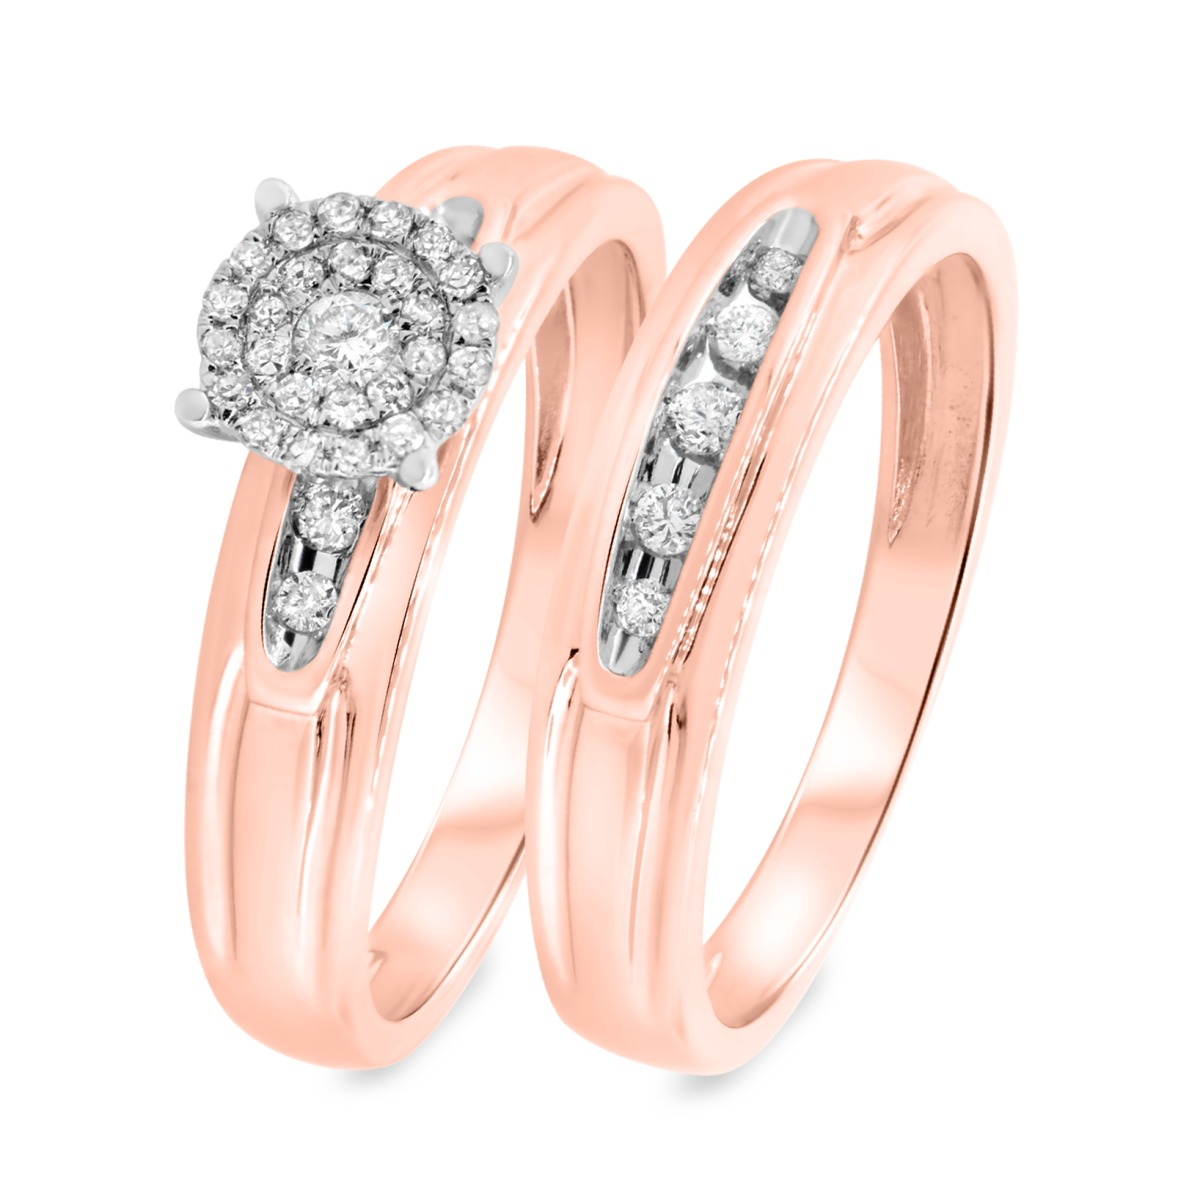 1/4 CT. T.W. Diamond Matching Bridal Ring Set 14K Rose Gold